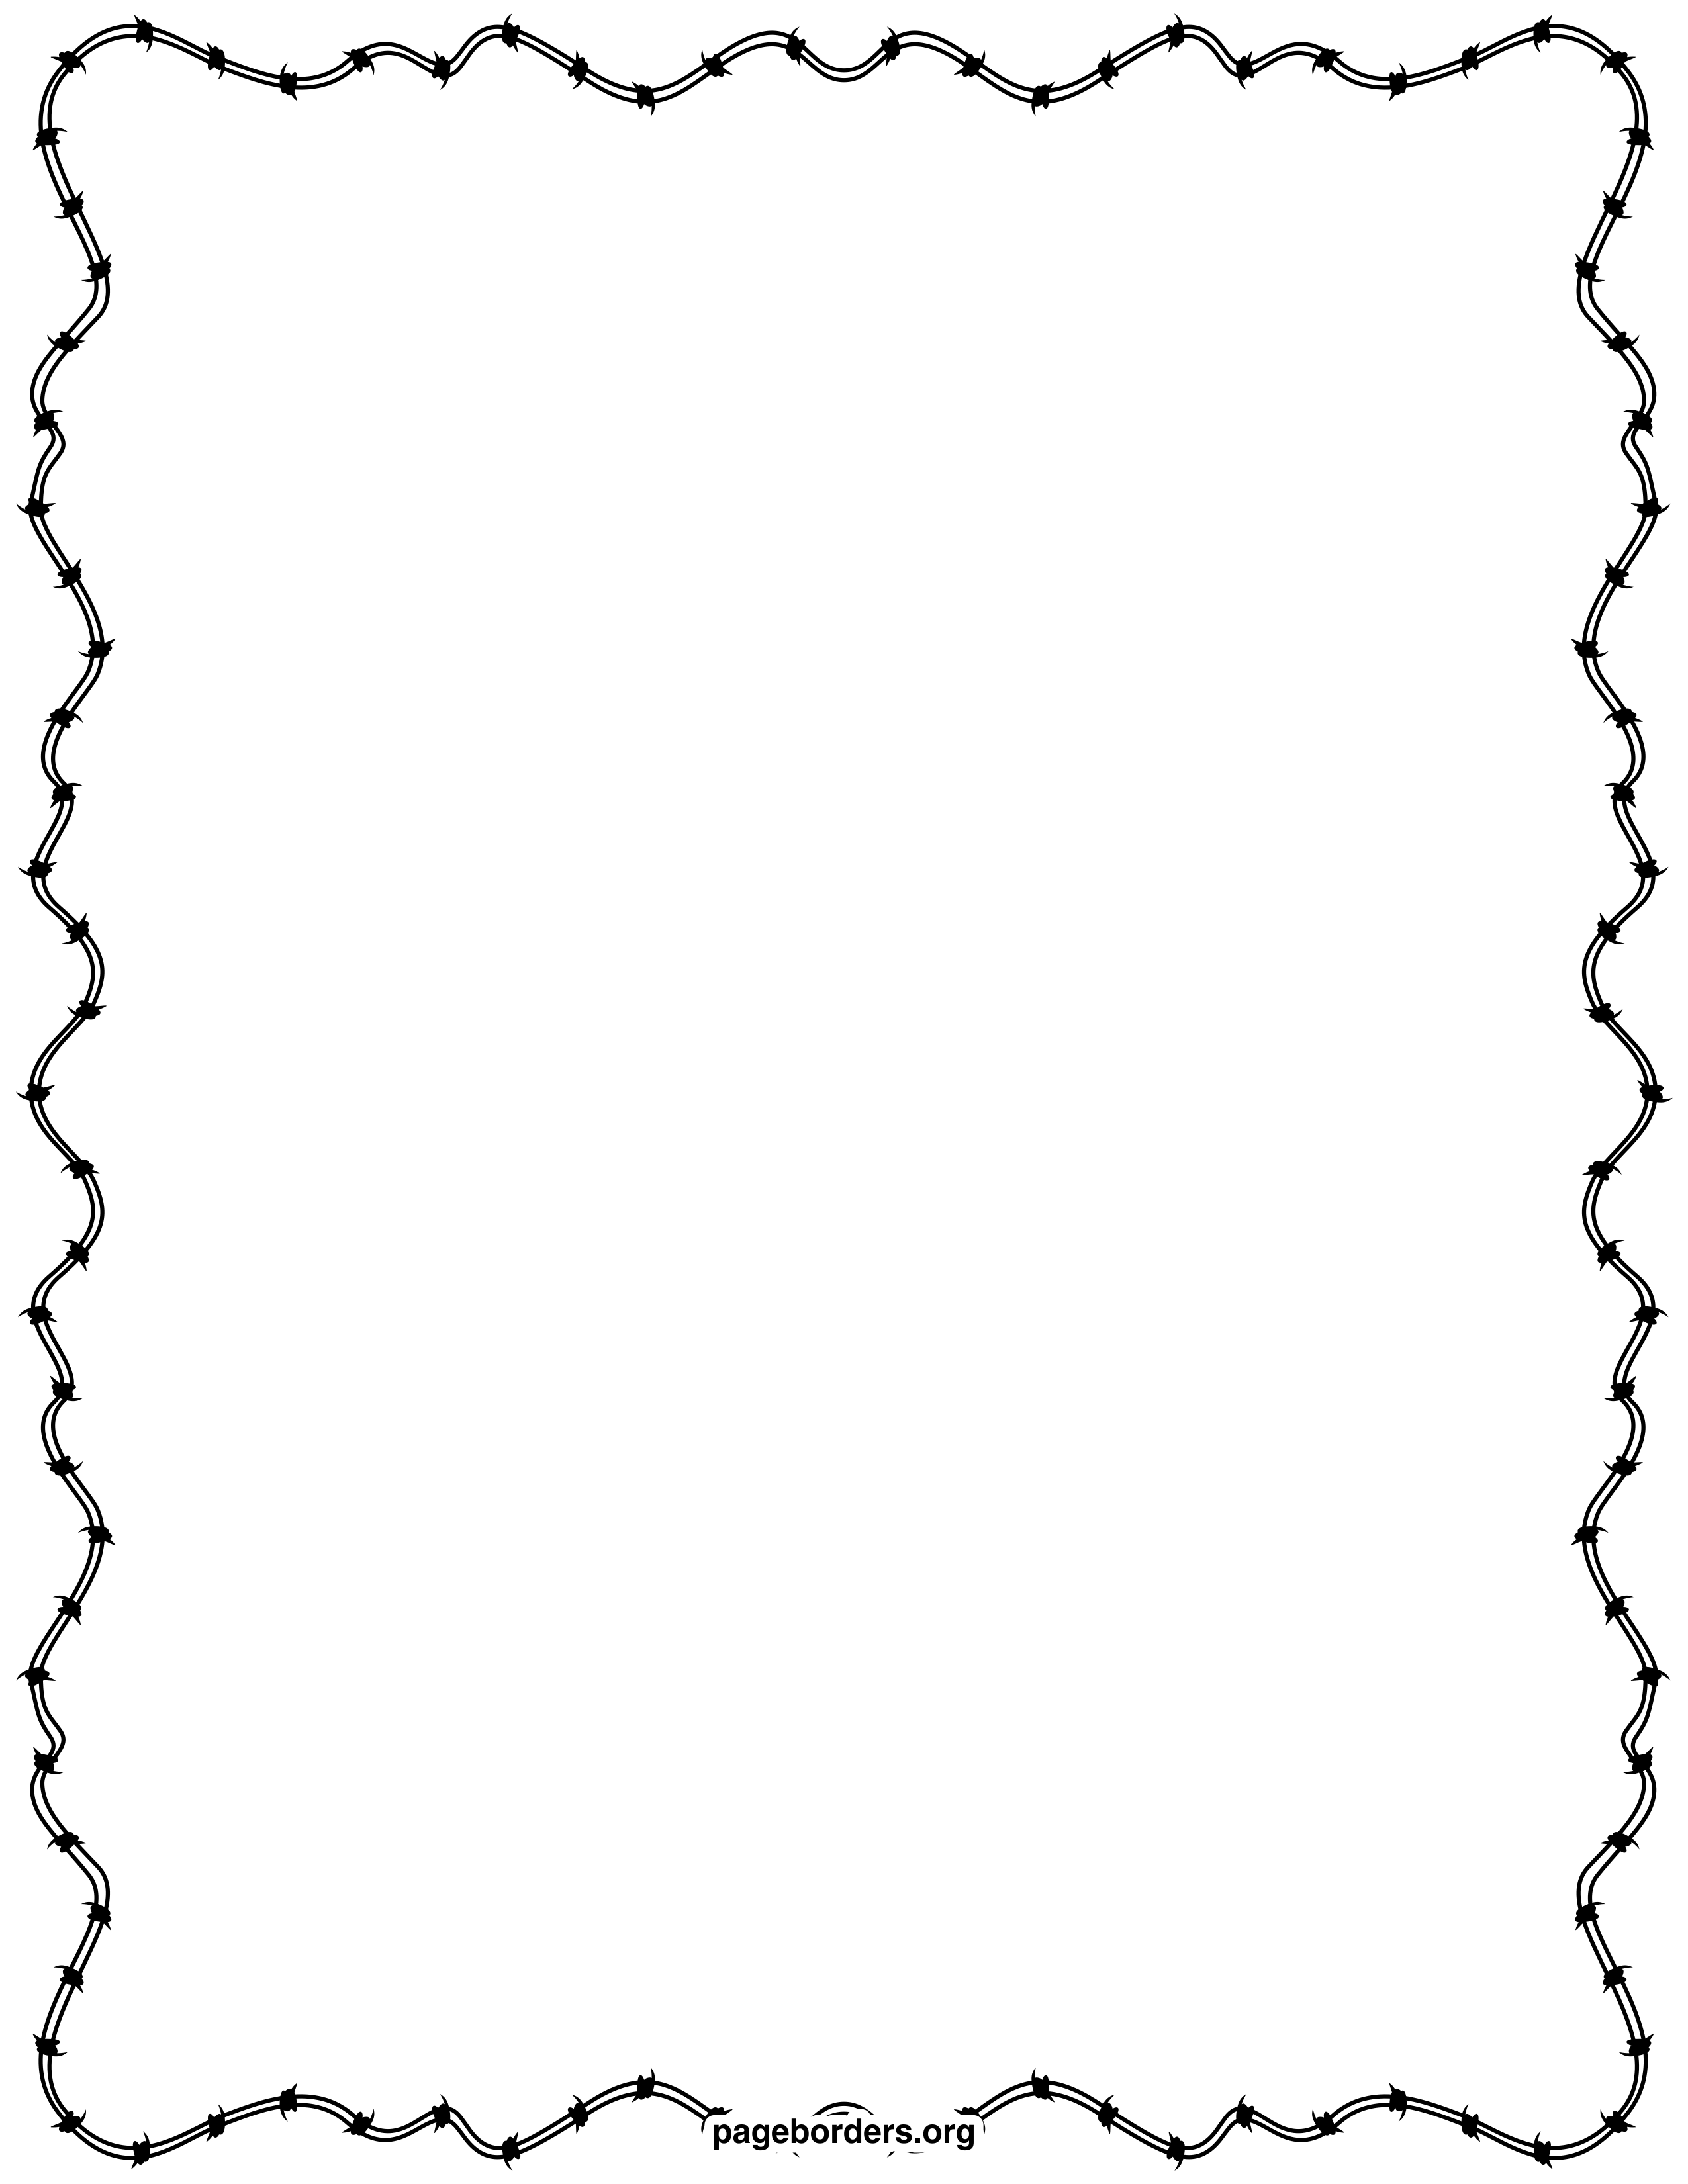 Barbed Wire Border: Clip Art, Page Border, and Vector Graphics